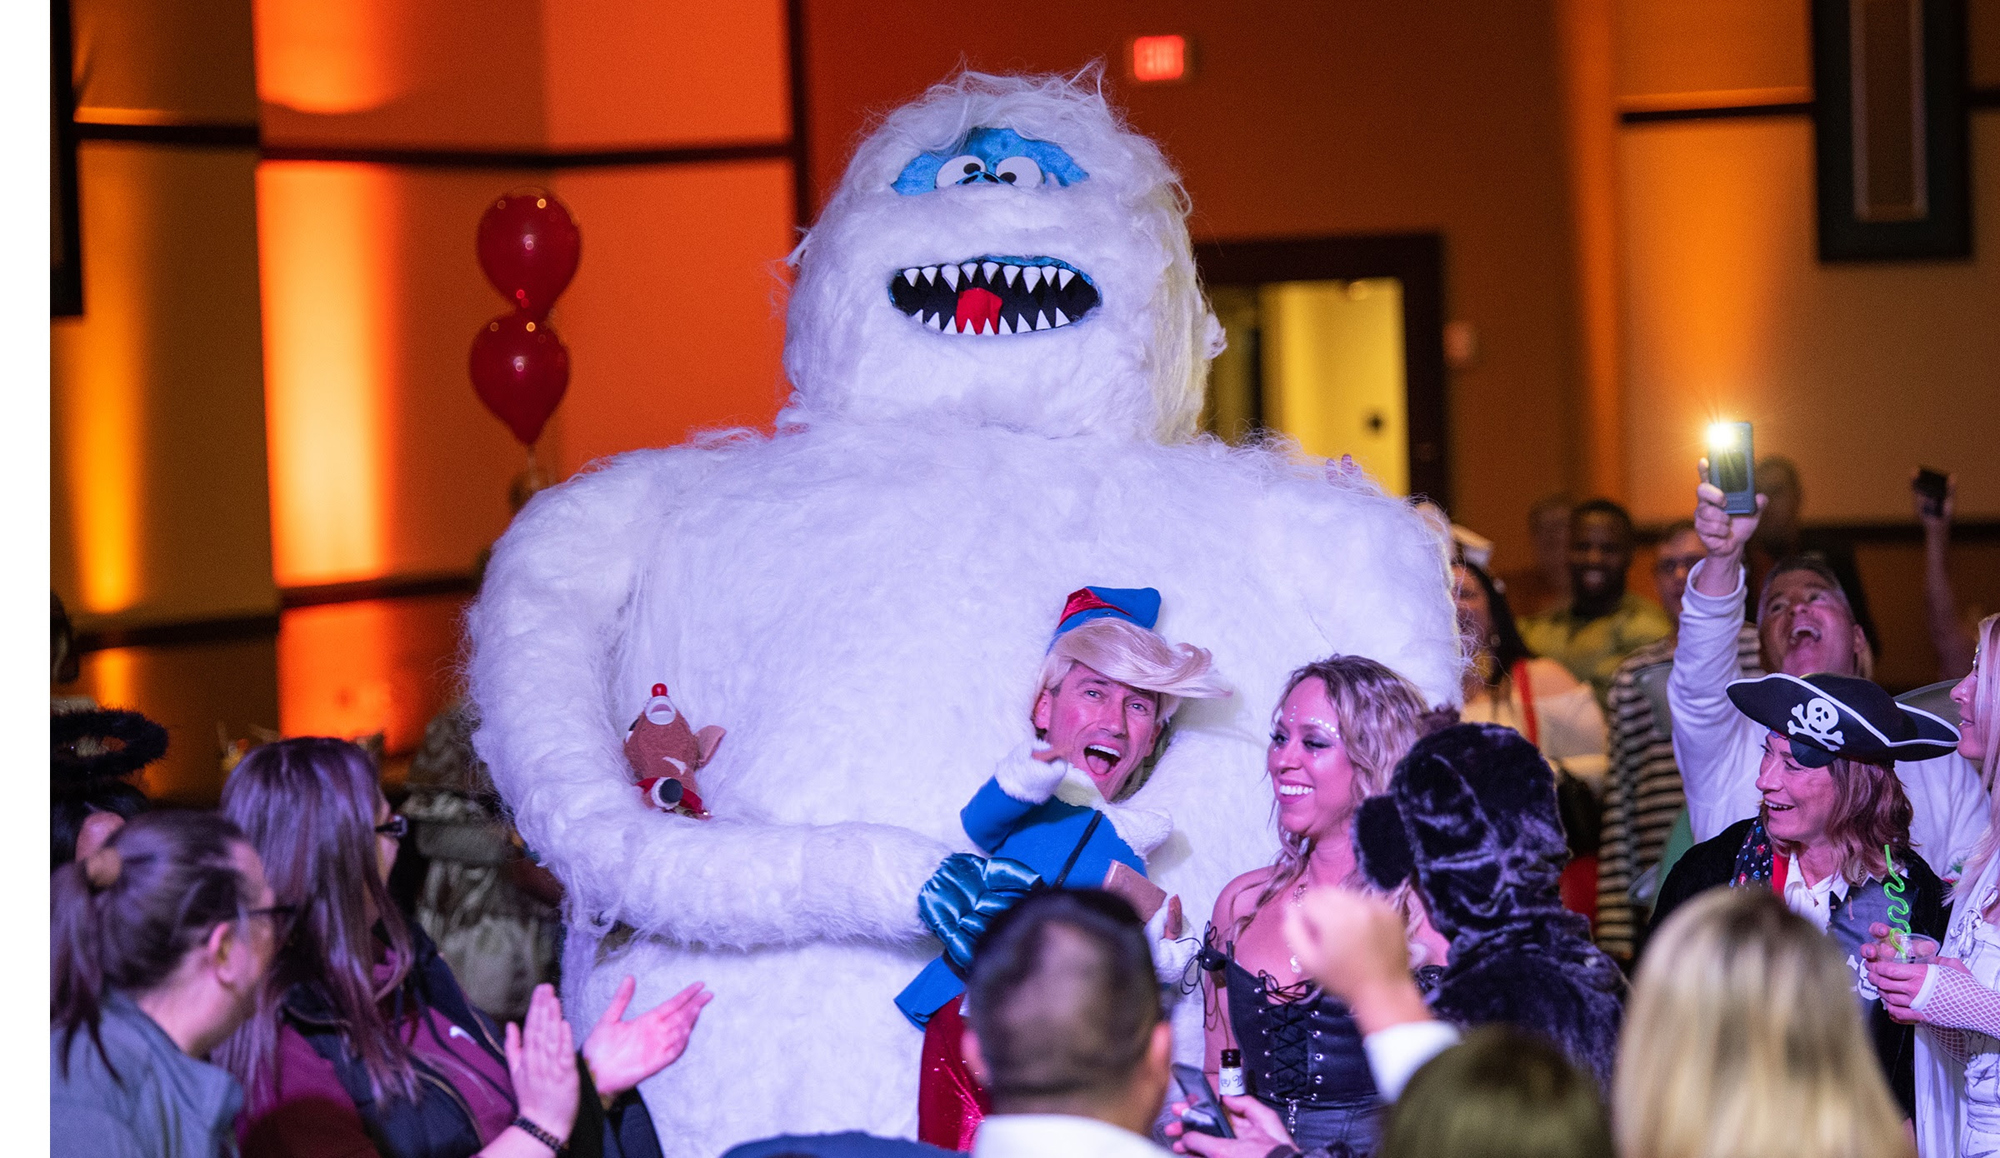 When Is The Halloween Party At Mohegan Sun 2020 Boo Bash Halloween party and costume contest is back at Mohegan